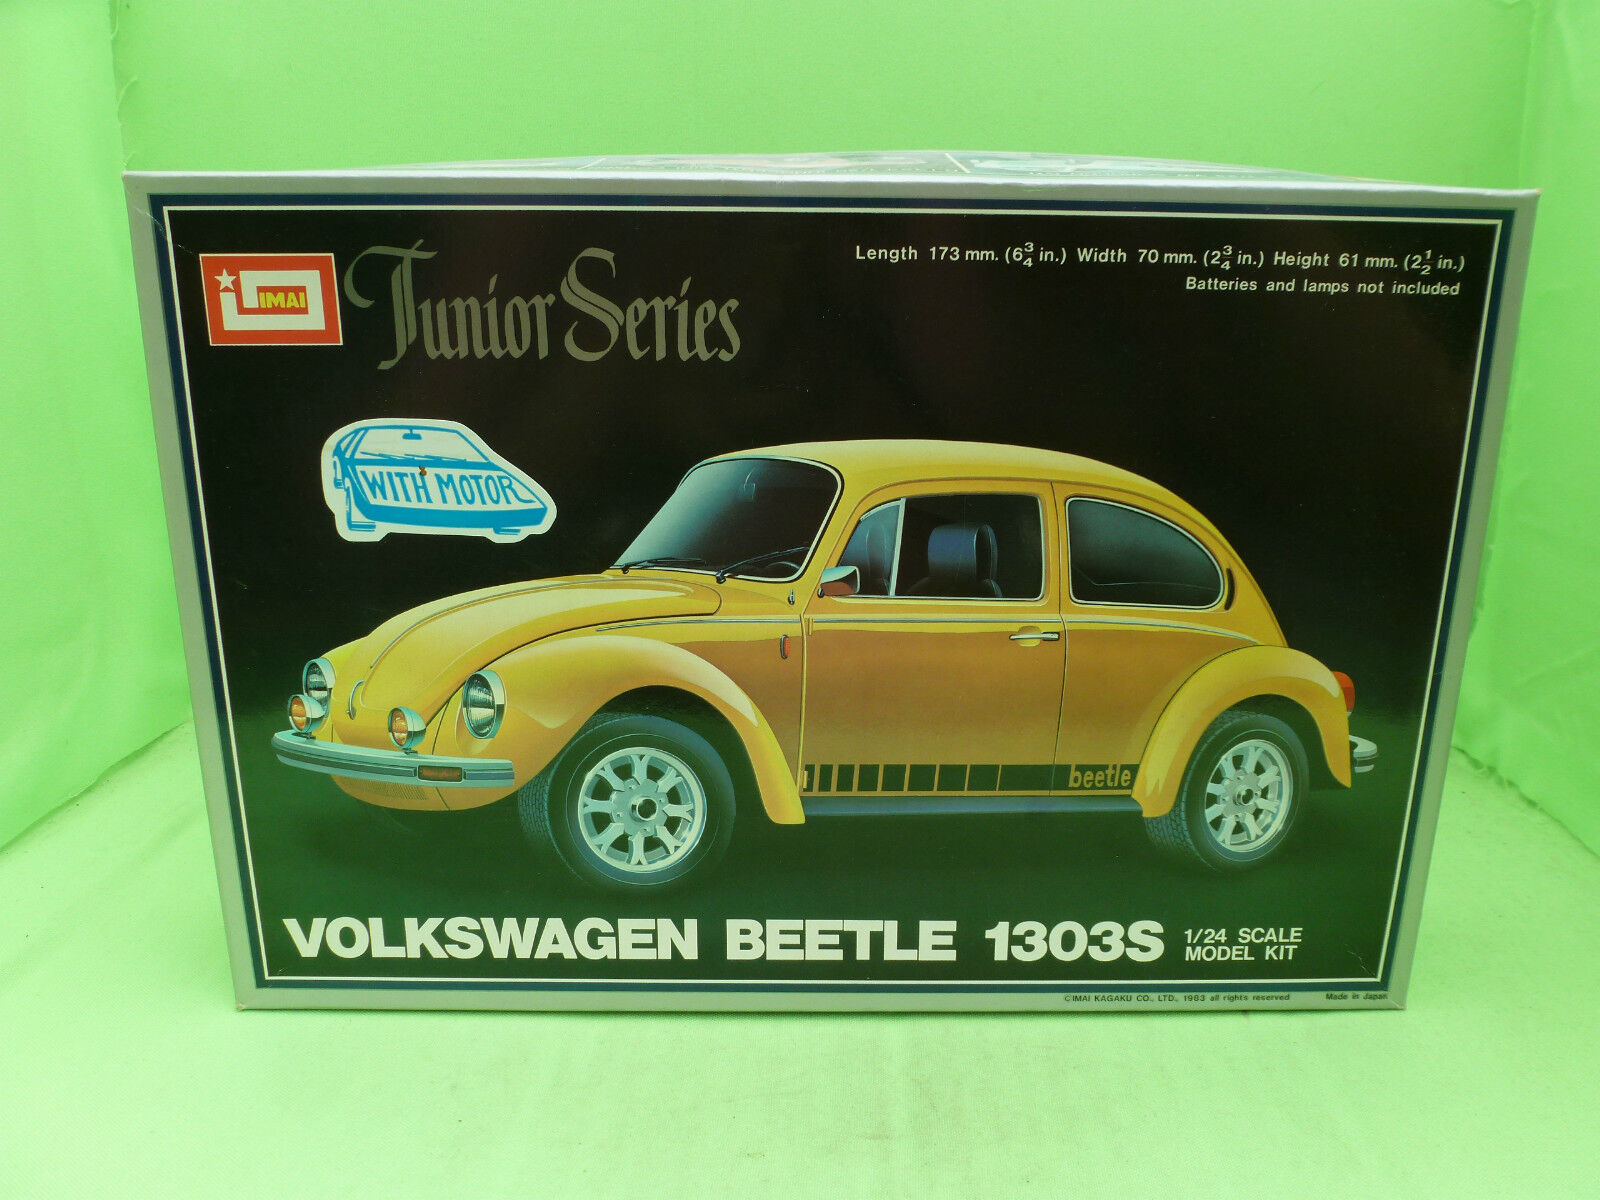 IMAI NO.9 B-1321 VW BEETLE KAFER  - WITH MOTOR - 1 24 - UNBUILT INBOX COMPLETE -